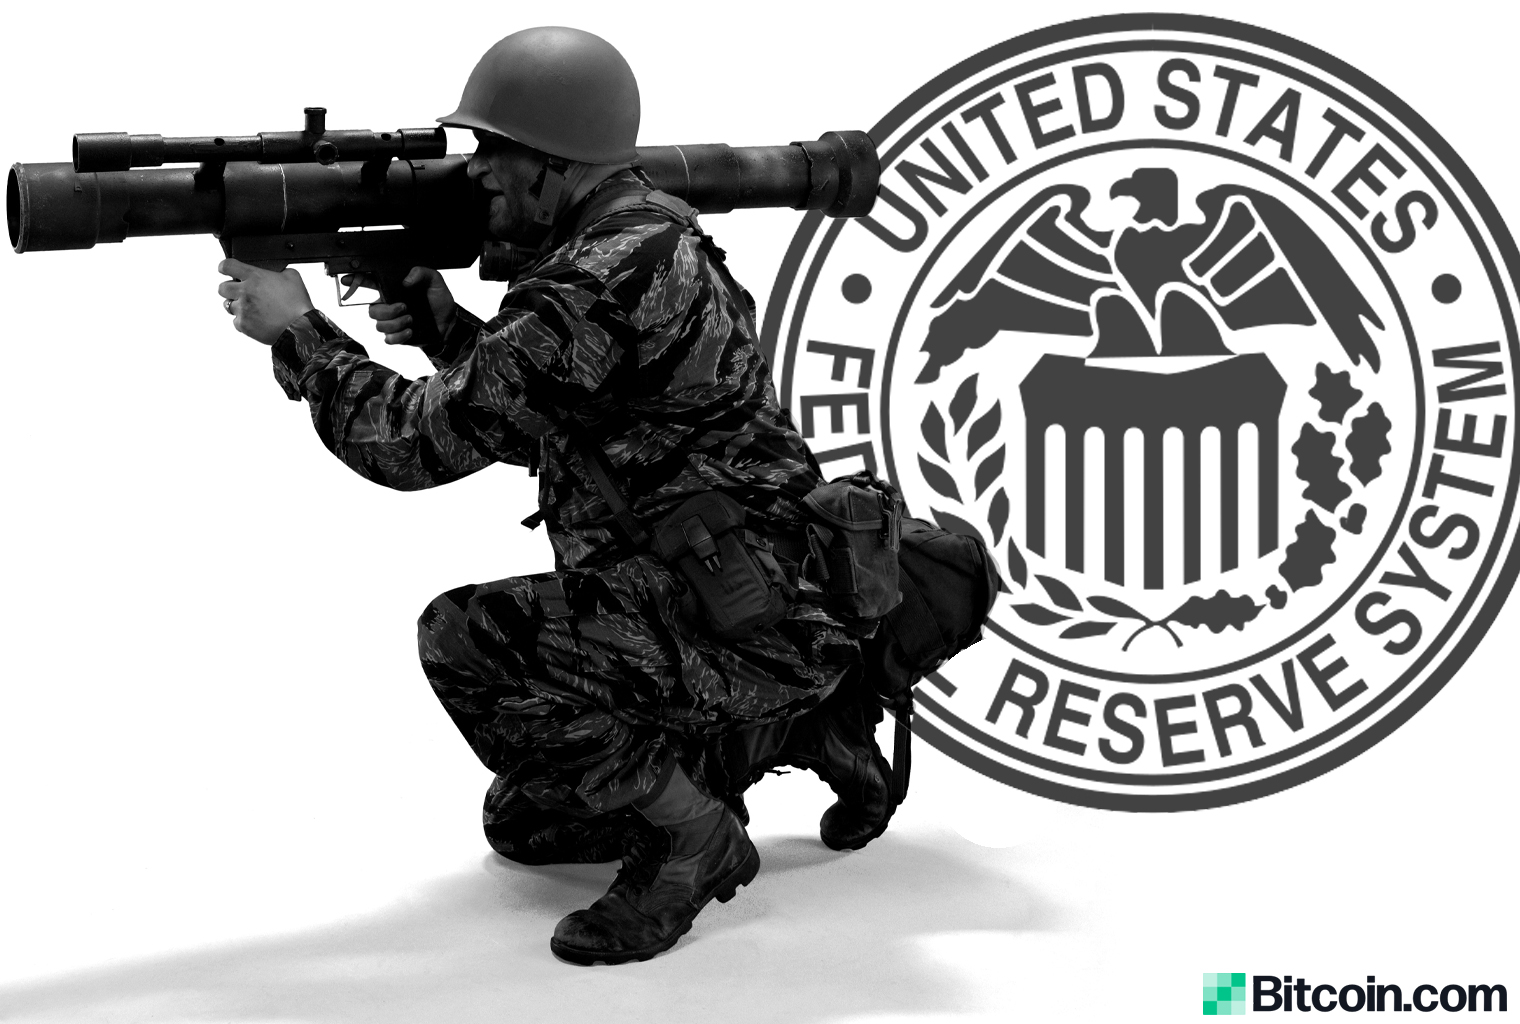 Financial Bazookas Revealed - Market Strategists Believe the Fed Will Purchase Stocks Soon